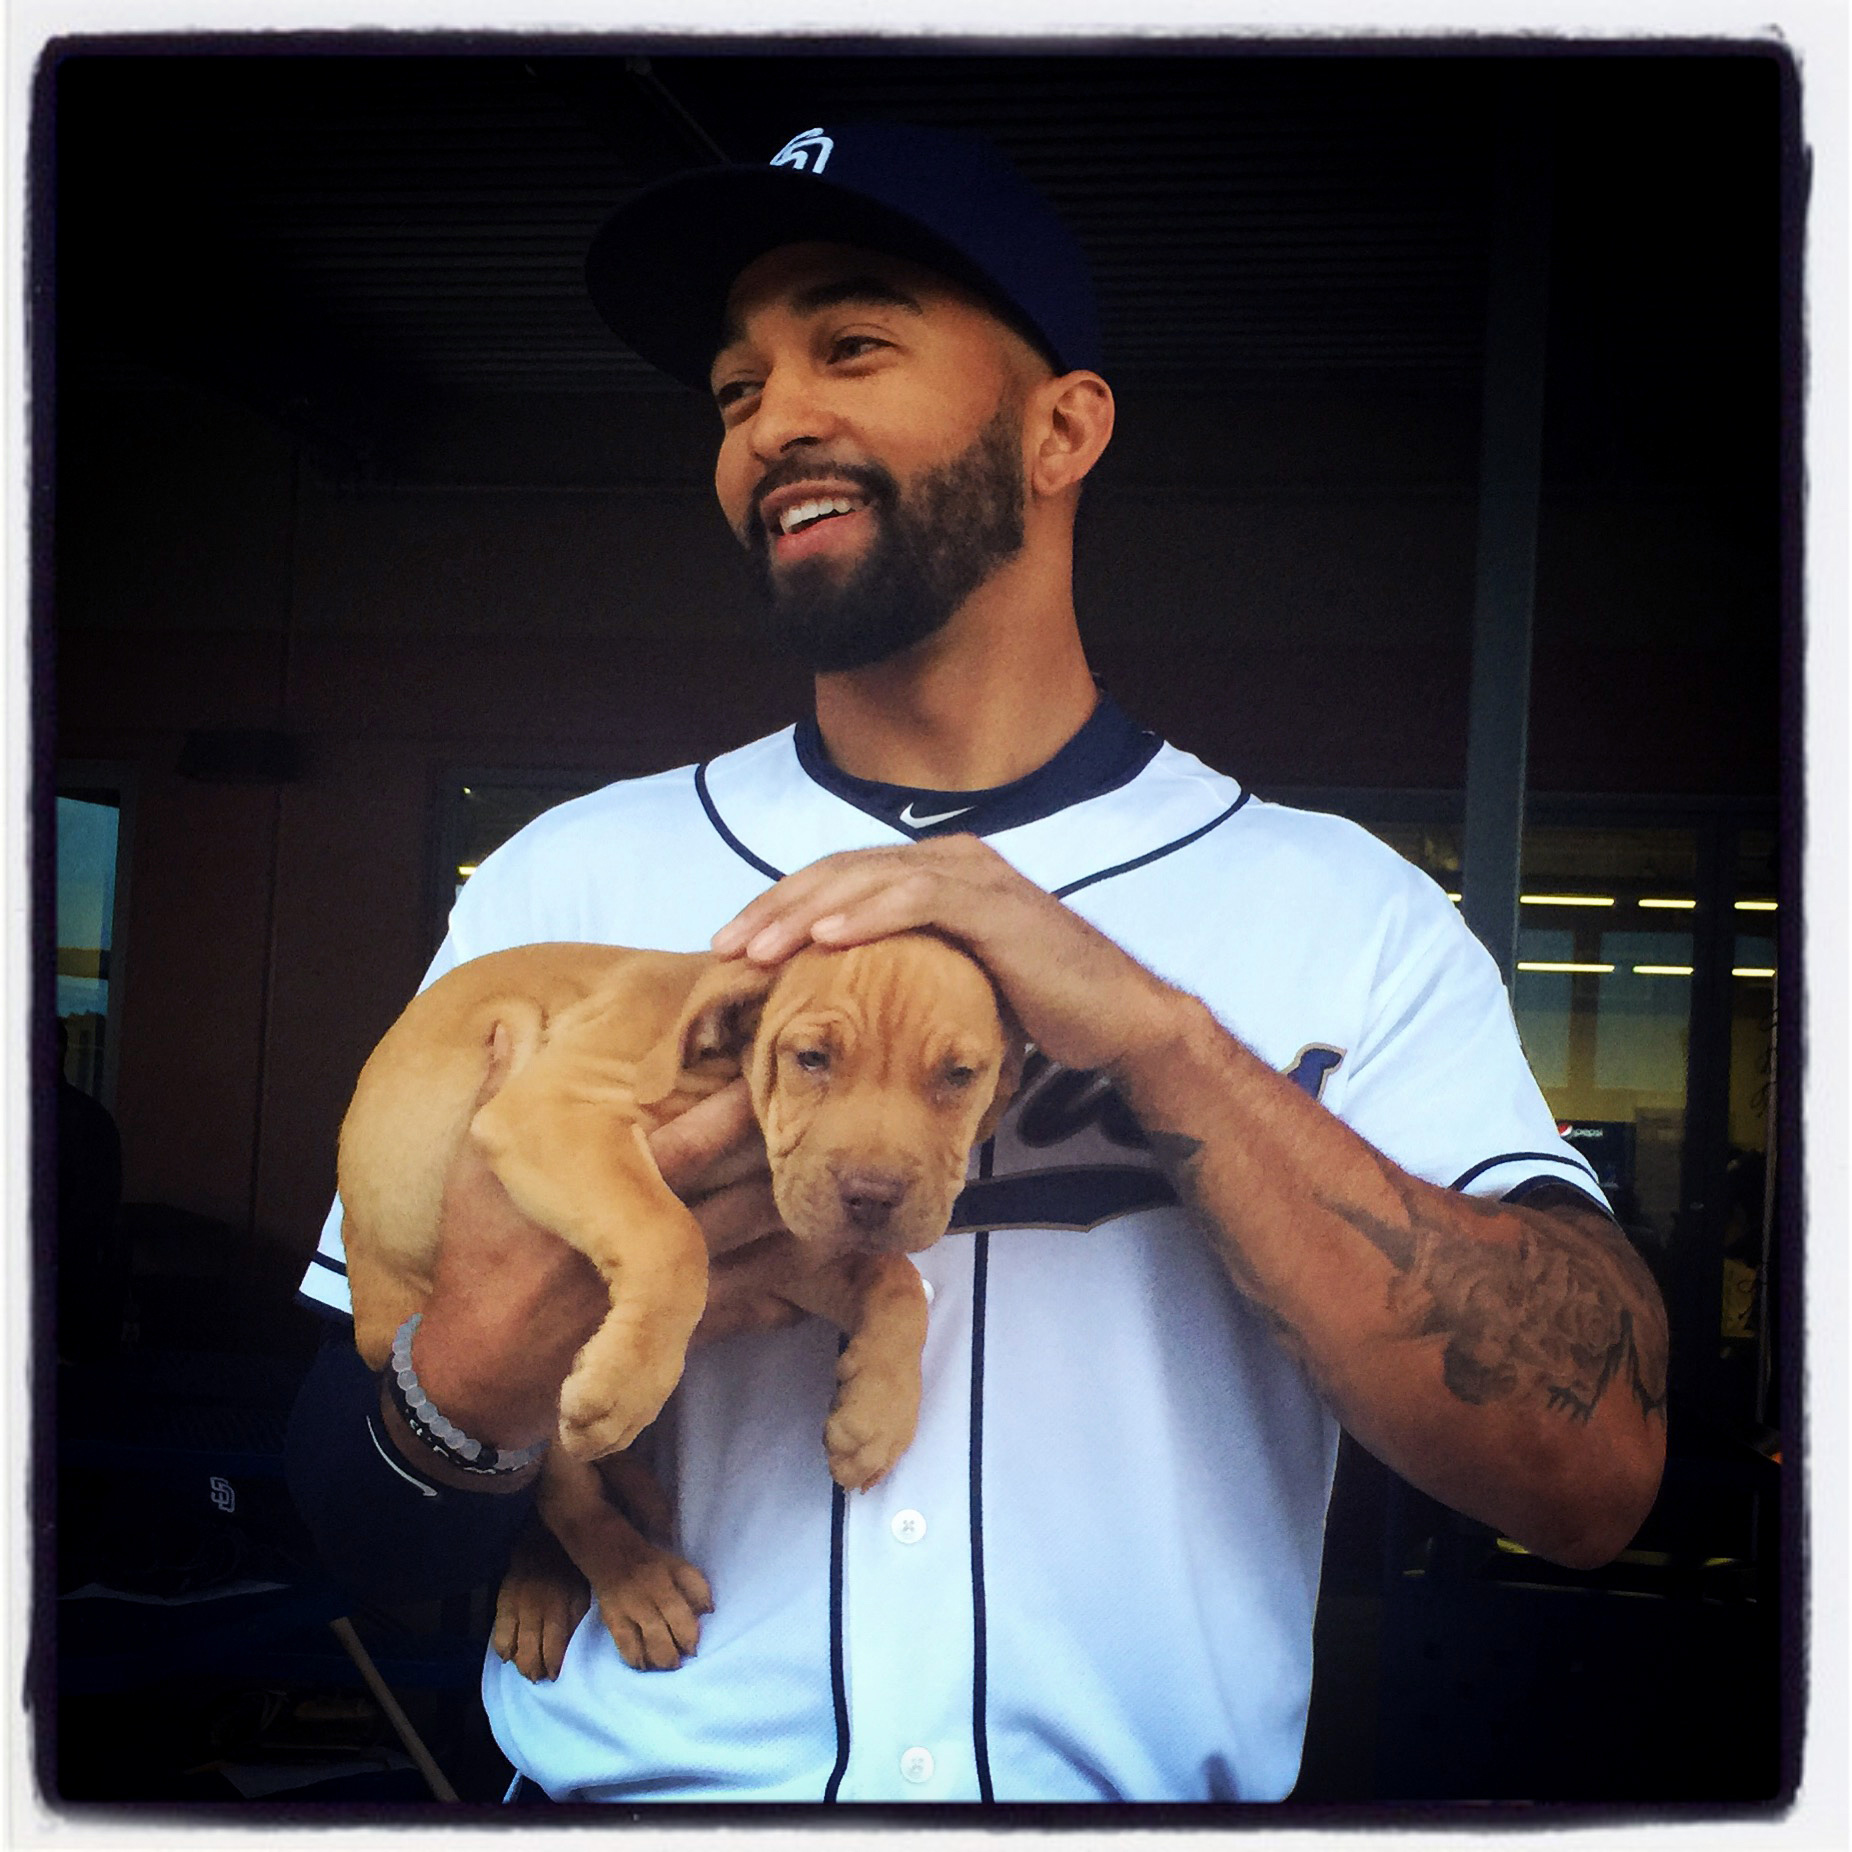 Matt Kemp of the #Padres holds his new friend on photo day this morning at #springtraining in Peoria, Arizona. #instantbaseball #iphone6plus #puppy